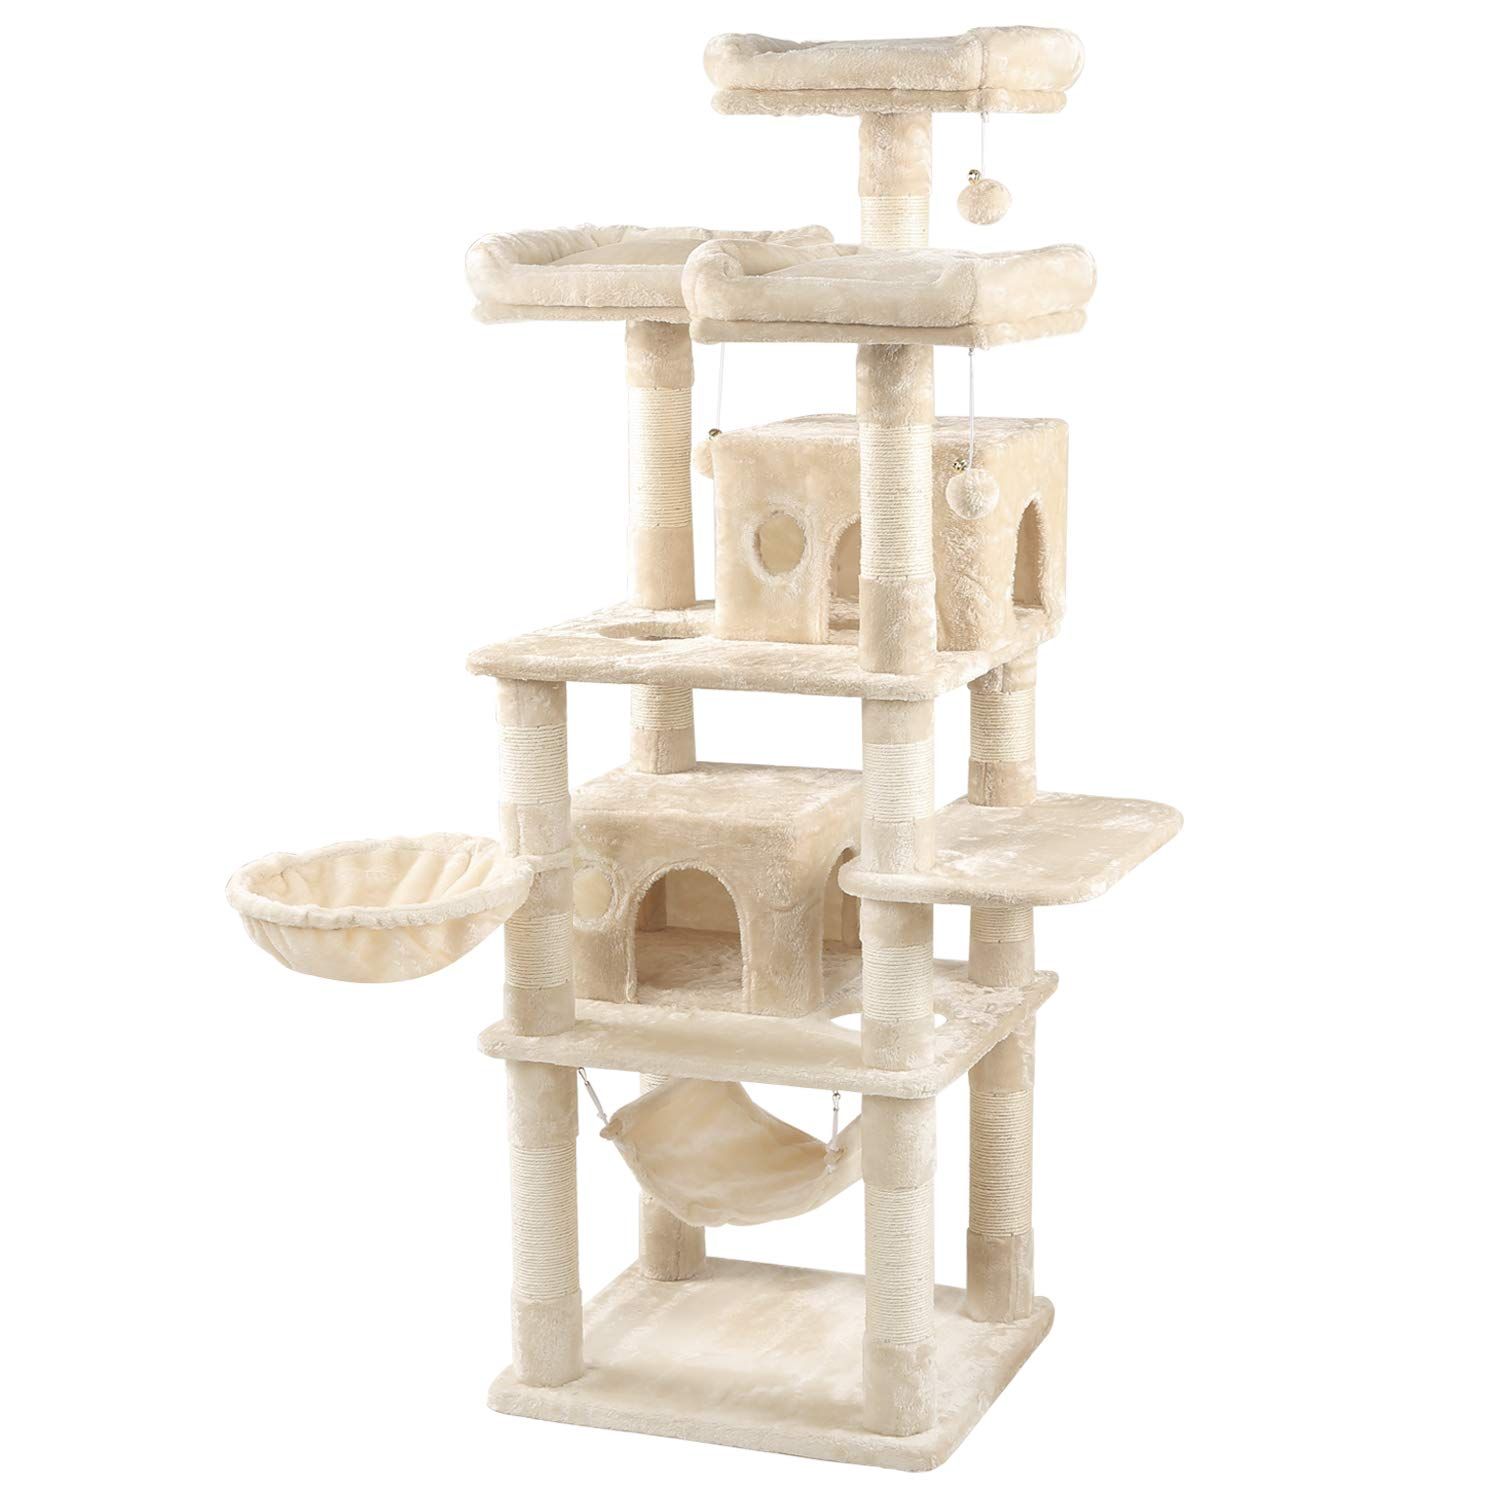 WLIVE 67'' Large Cat Tree Condo with Sisal Scratching Posts, 2 Plush Condos and 3 Padded Platforms, Cat Tower Furniture WF062A